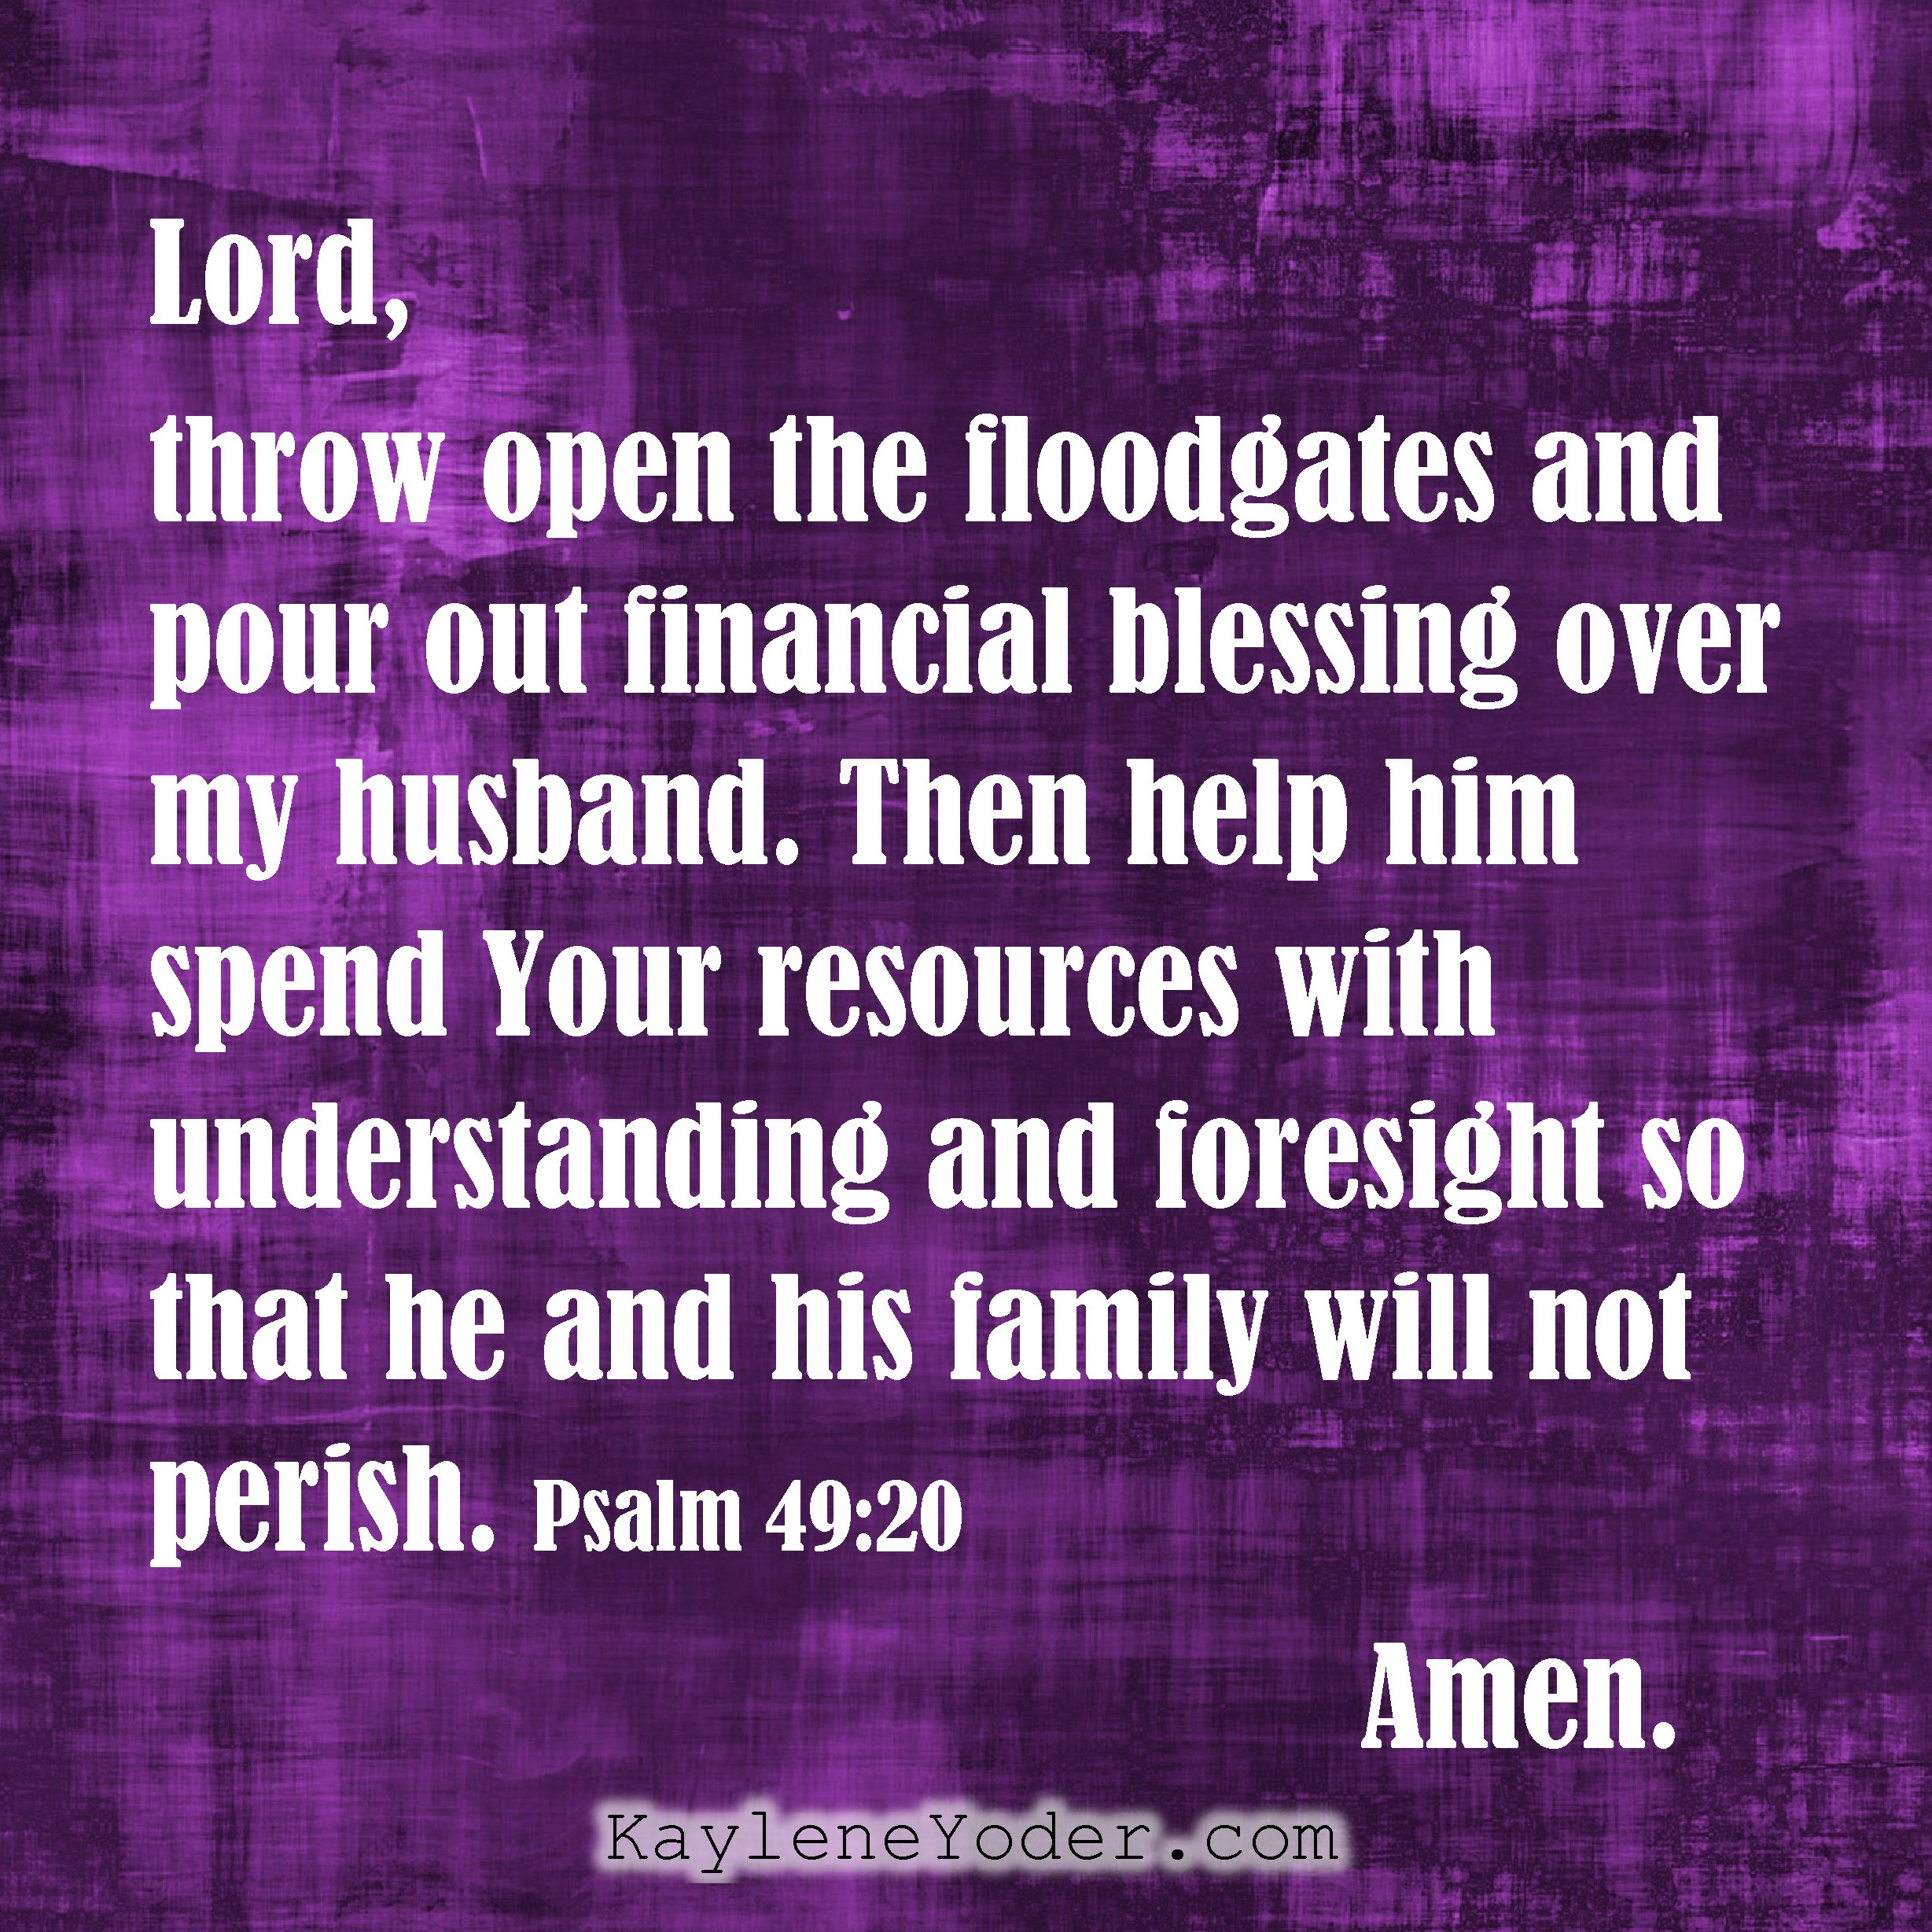 40 Prayers for my Husband: His Finances - Kaylene Yoder